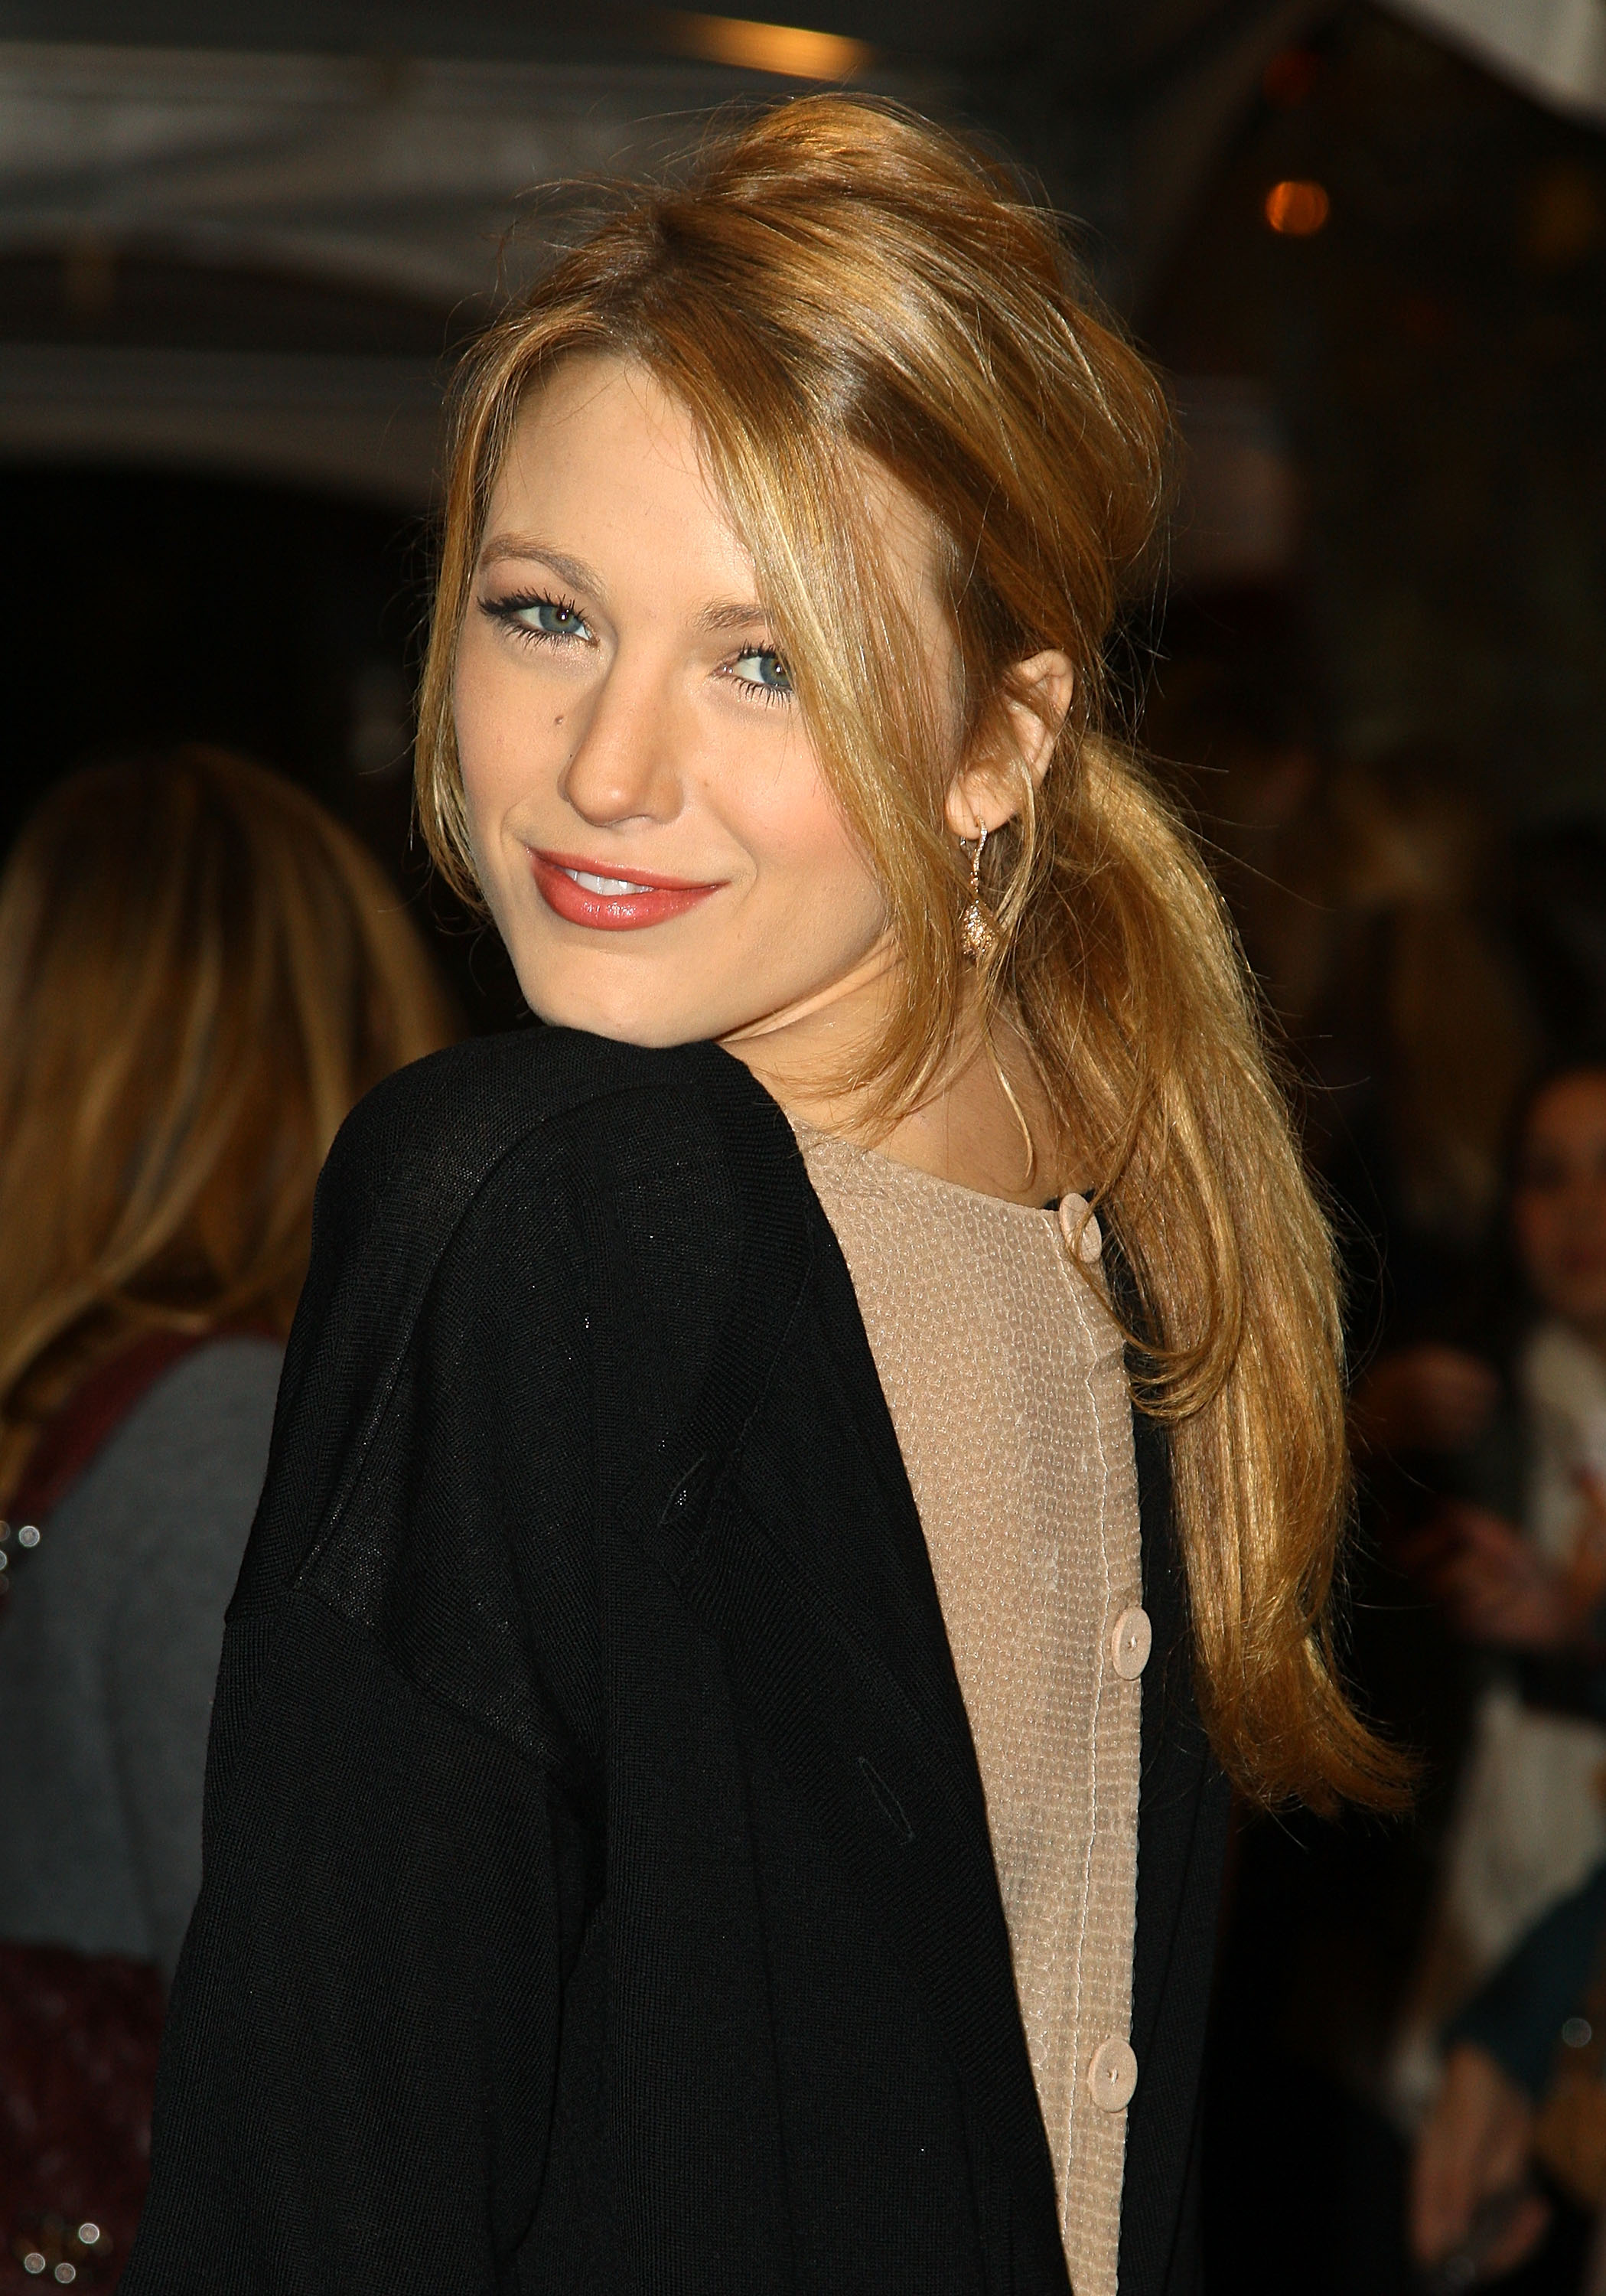 58916_Celebutopia-Blake_Lively-Opening_party_for_Juicy_Couture1s_5th_Avenue_flagship_store-12_122_675lo.jpg